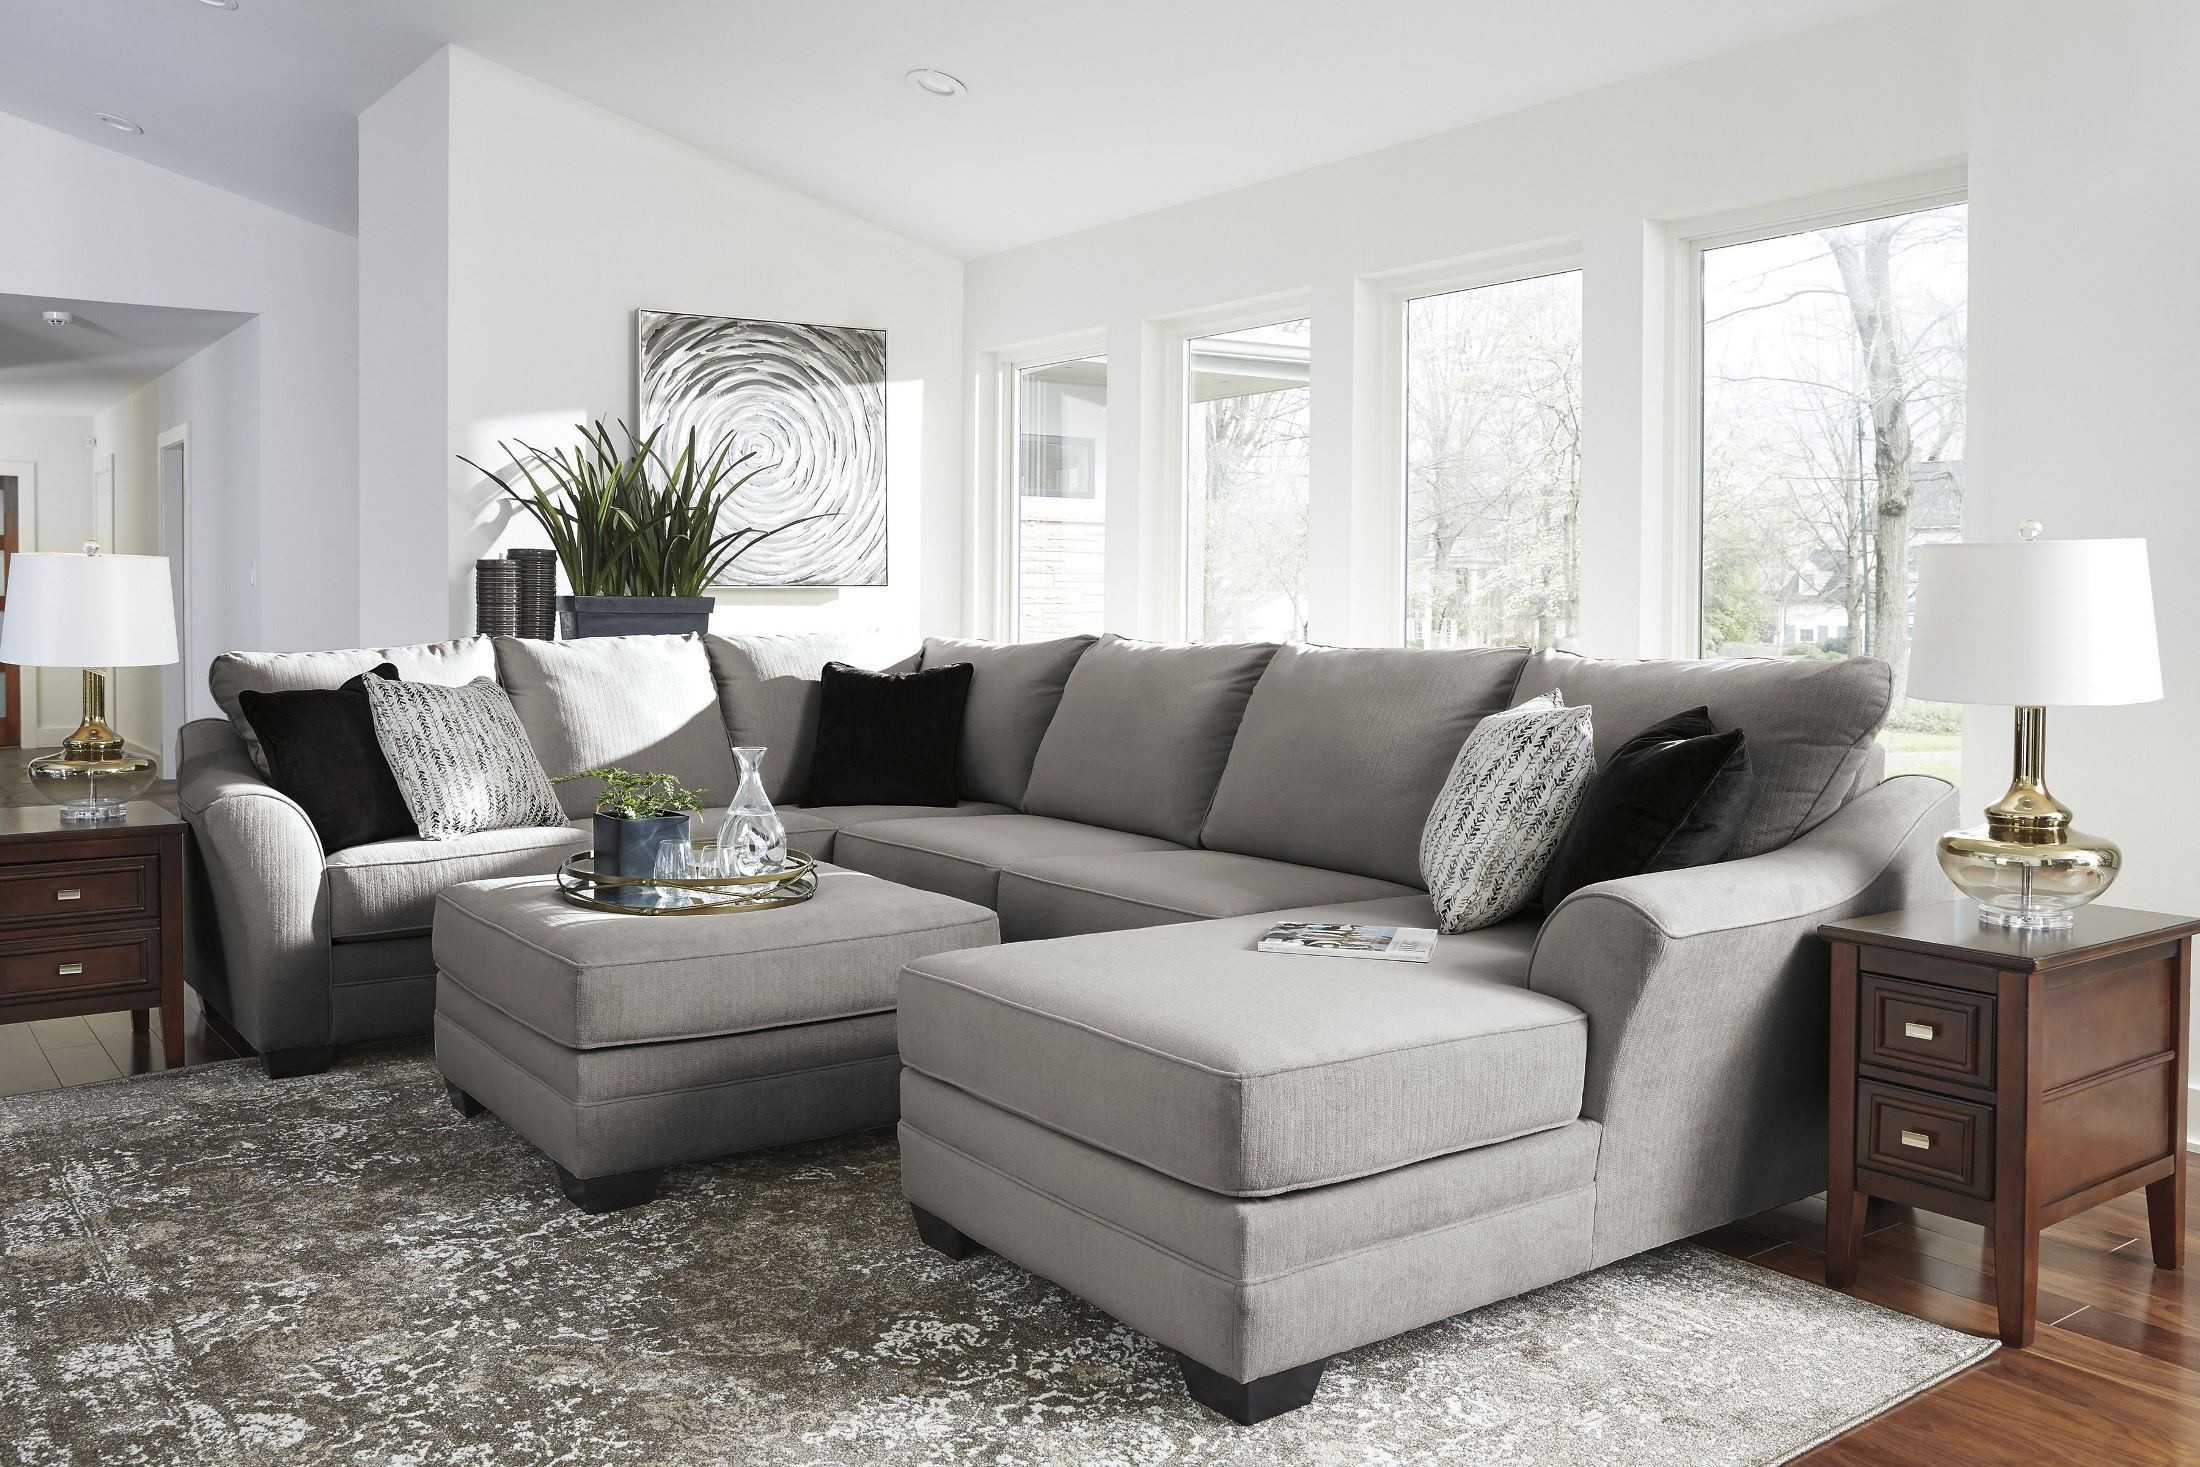 Palempor Pebble Oversized Accent Ottoman From Ashley